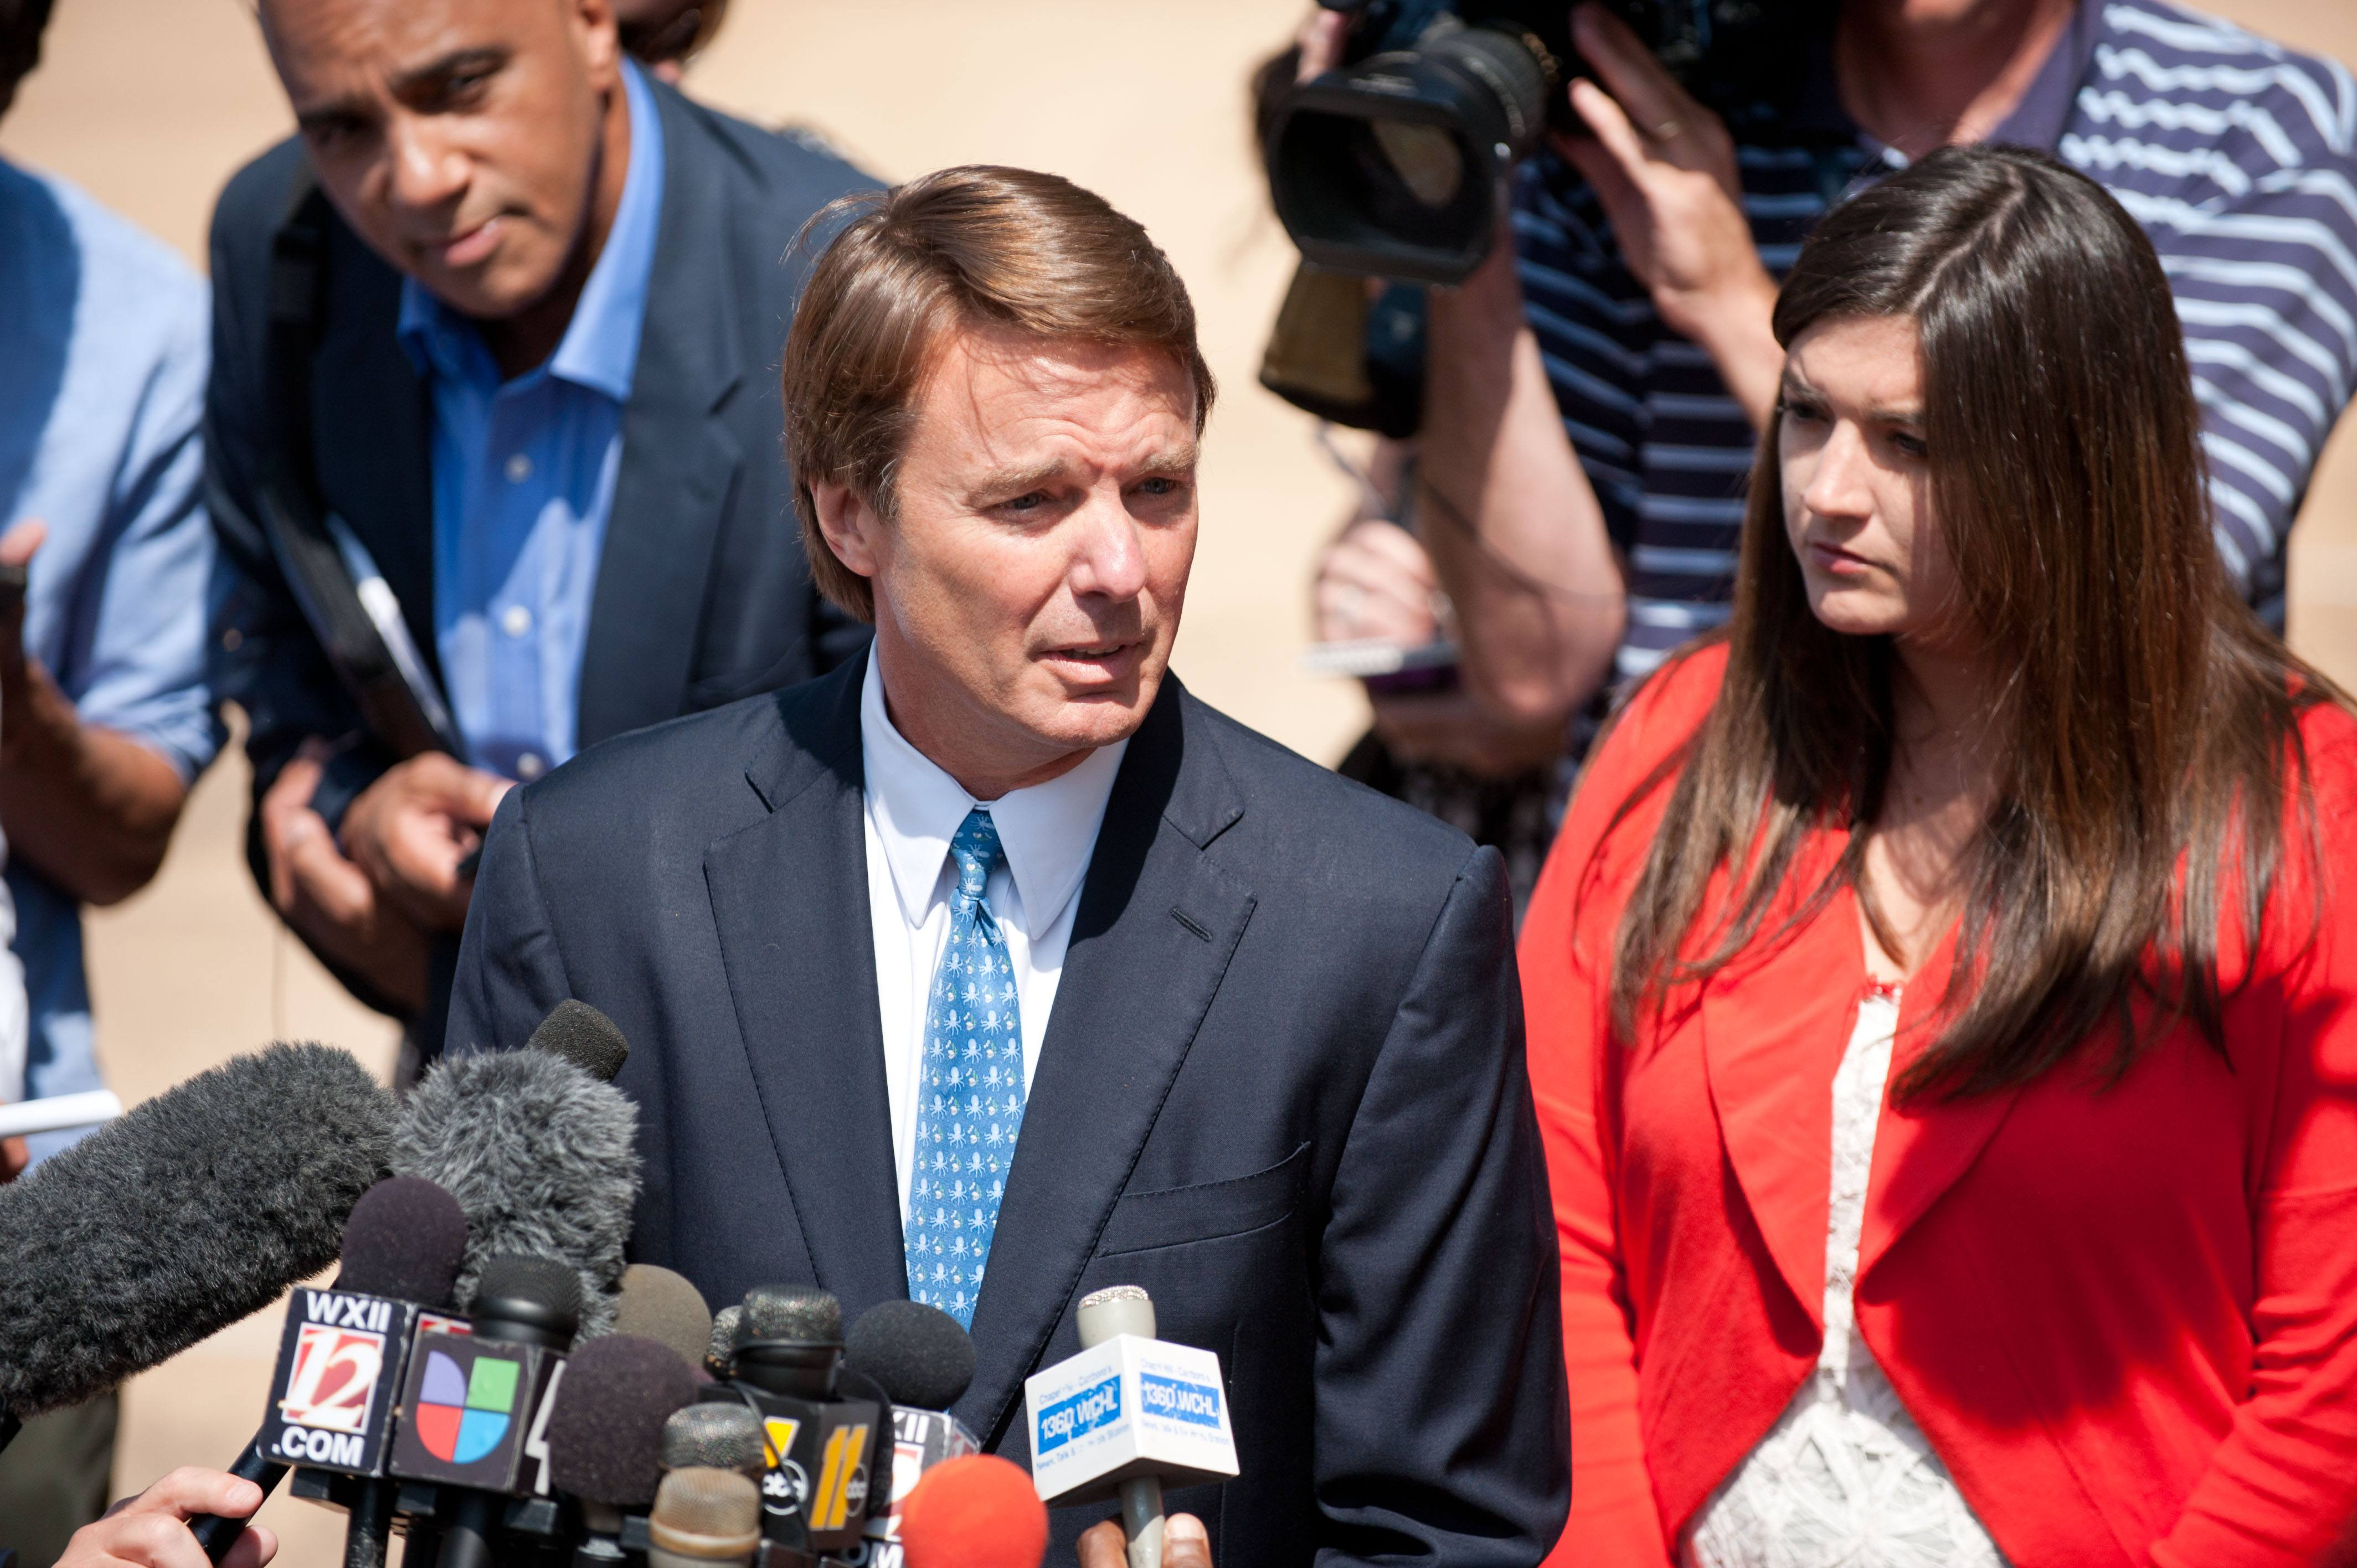 John Edwards affair scandal